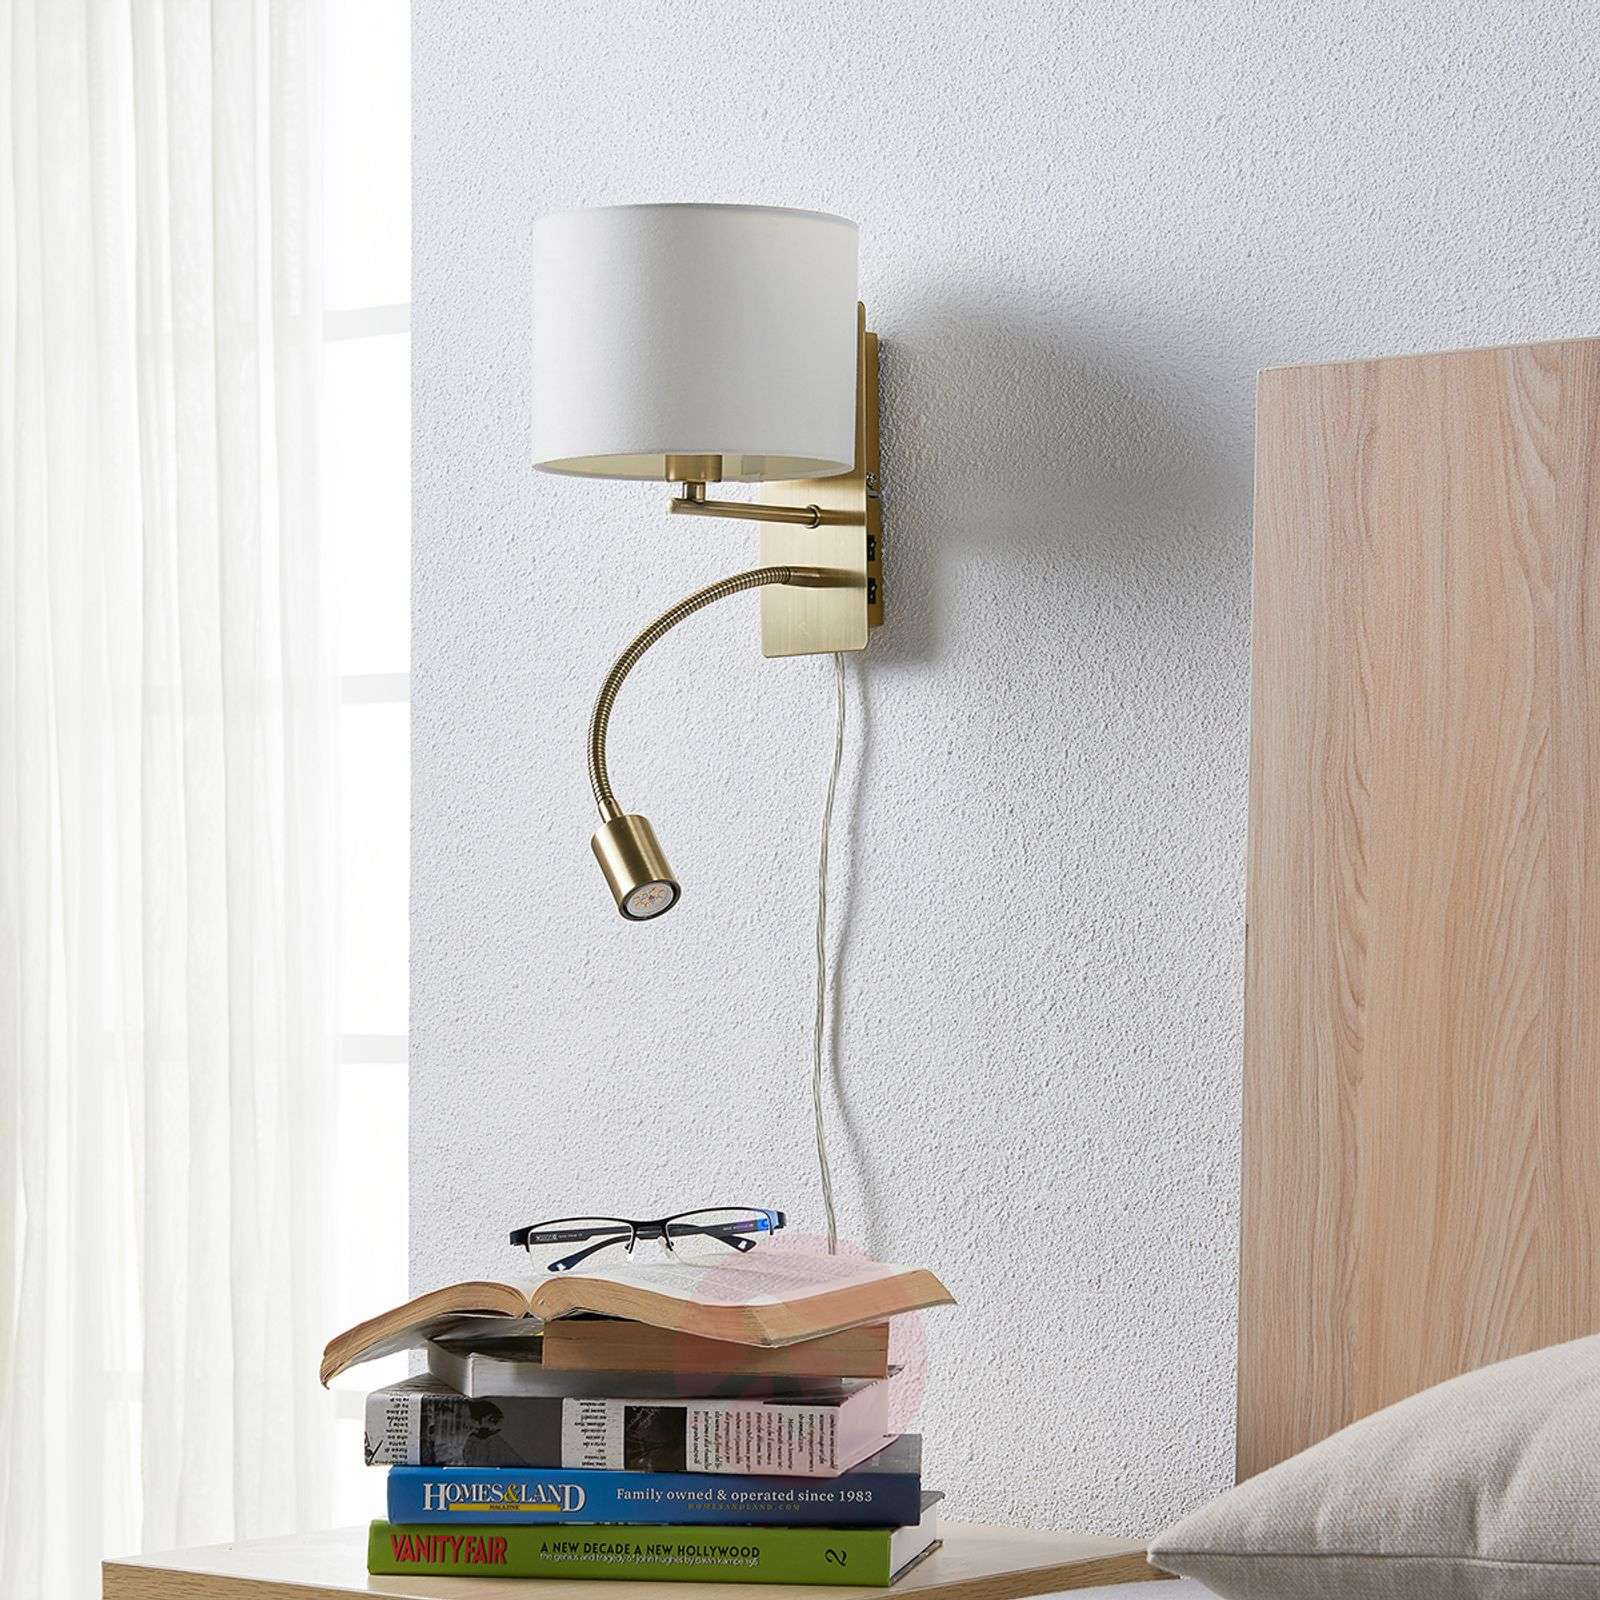 Fabric wall light Florens with a flexible LED arm-9620922-03